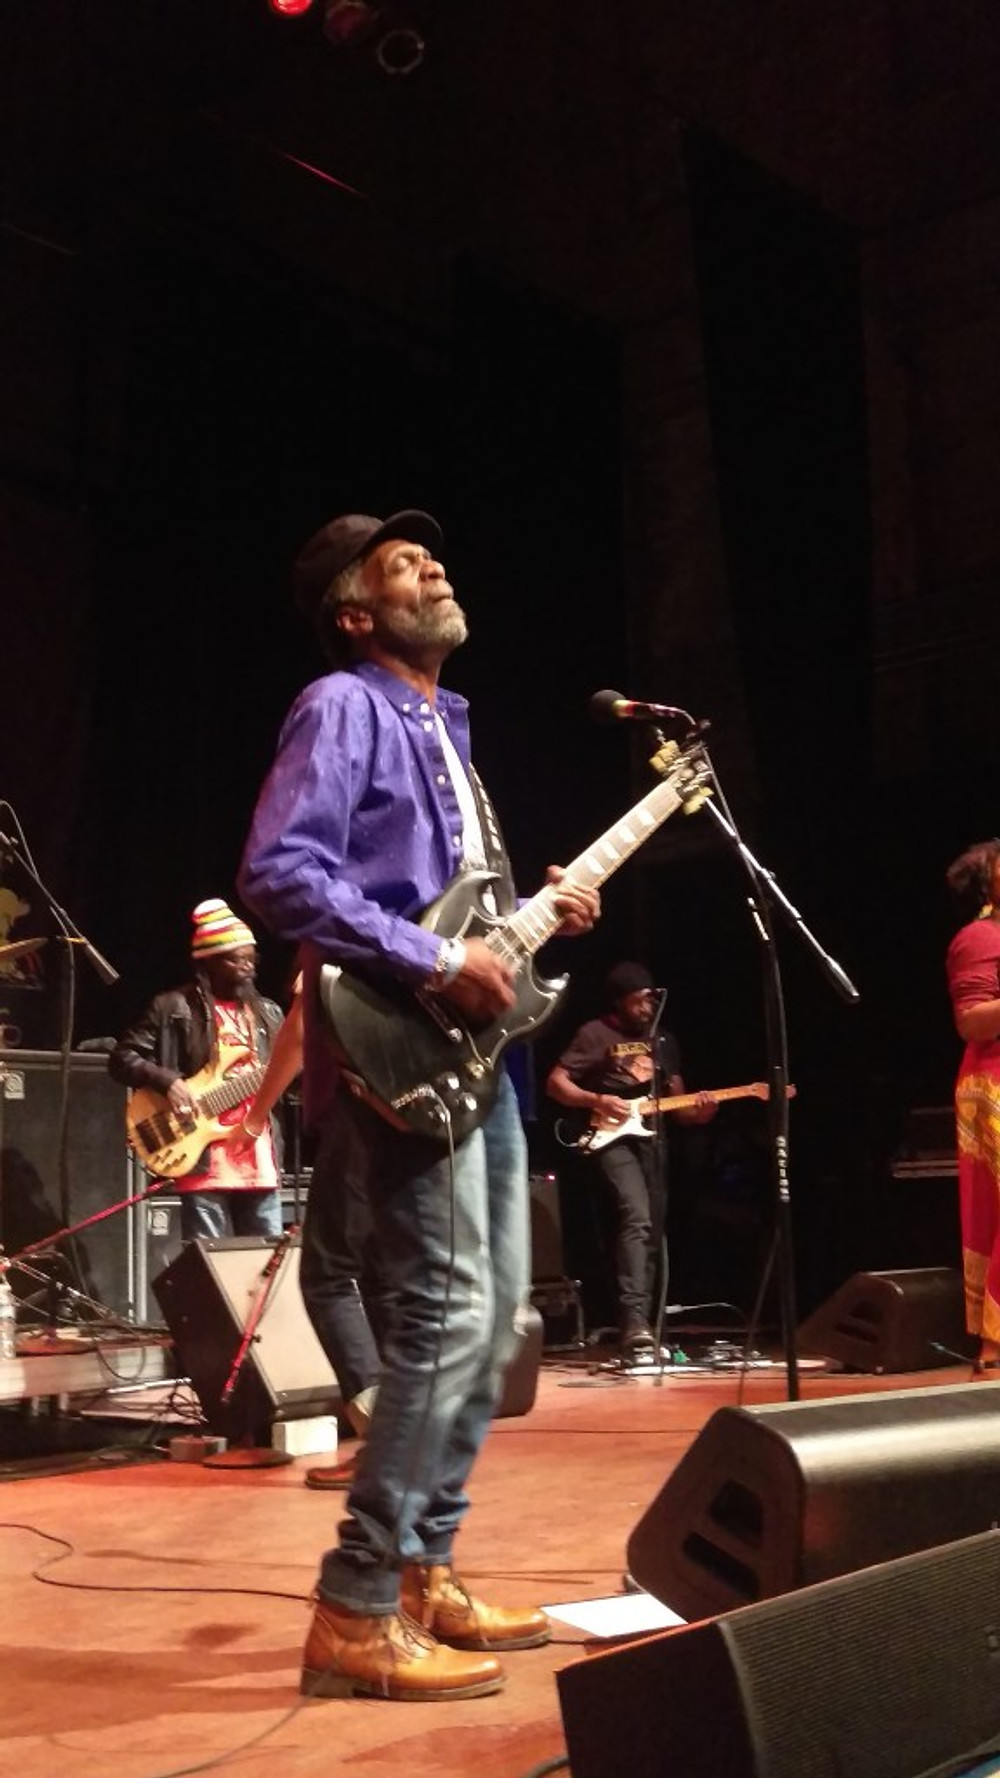 Guitarist Donald Kinsey during a recent show by The Wailers.